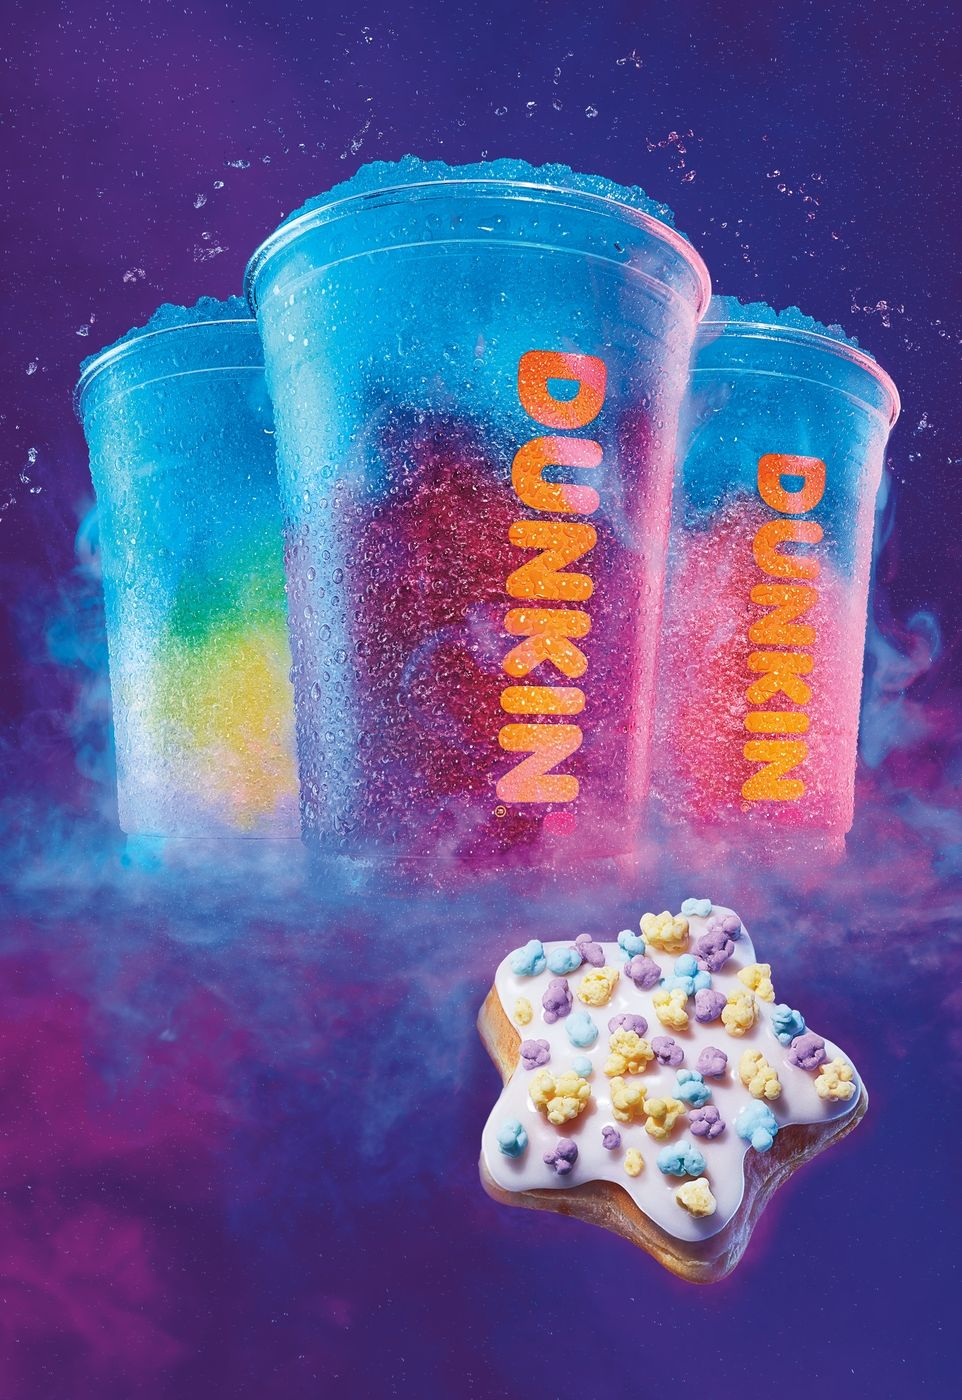 Dunkin's Out-of-This-World Seasonal Menu Features Cosmic COOLATTA Frozen Beverages and Baskin-Robbins Ice Cream Flavored Coffees